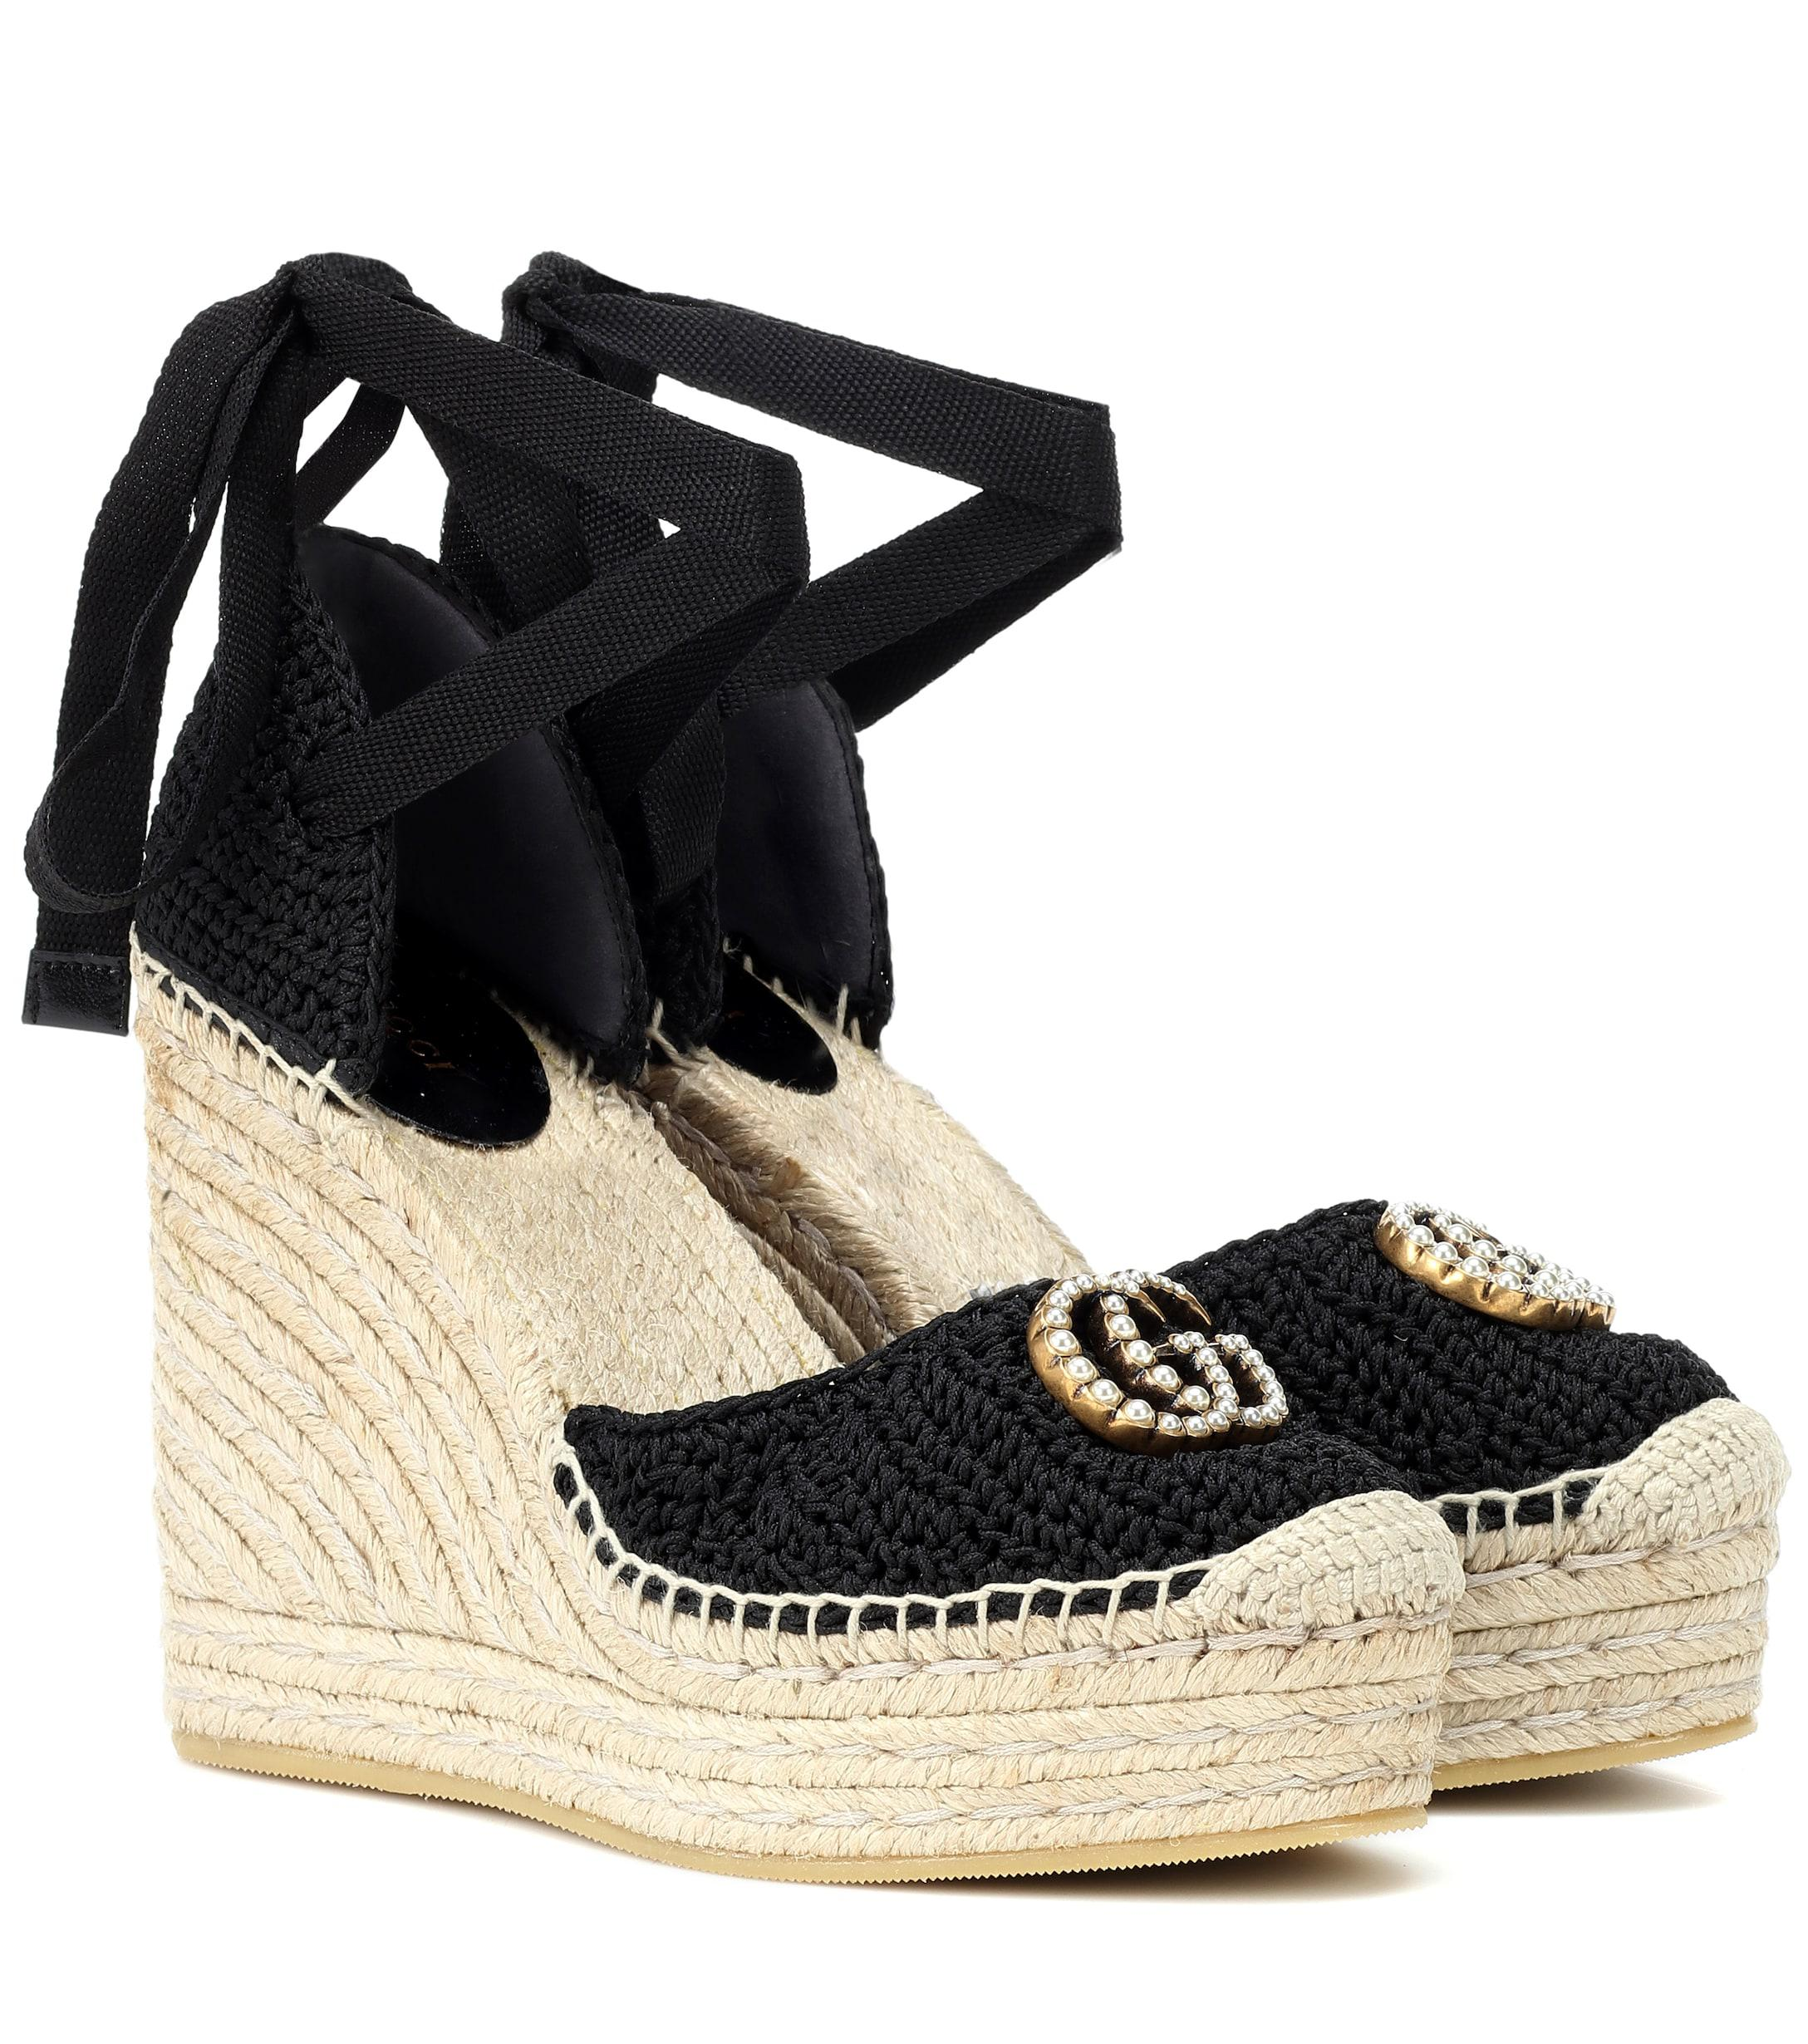 cf33c4c023b1 Lyst - Gucci Crochet Wedge Espadrilles in Black - Save 15%